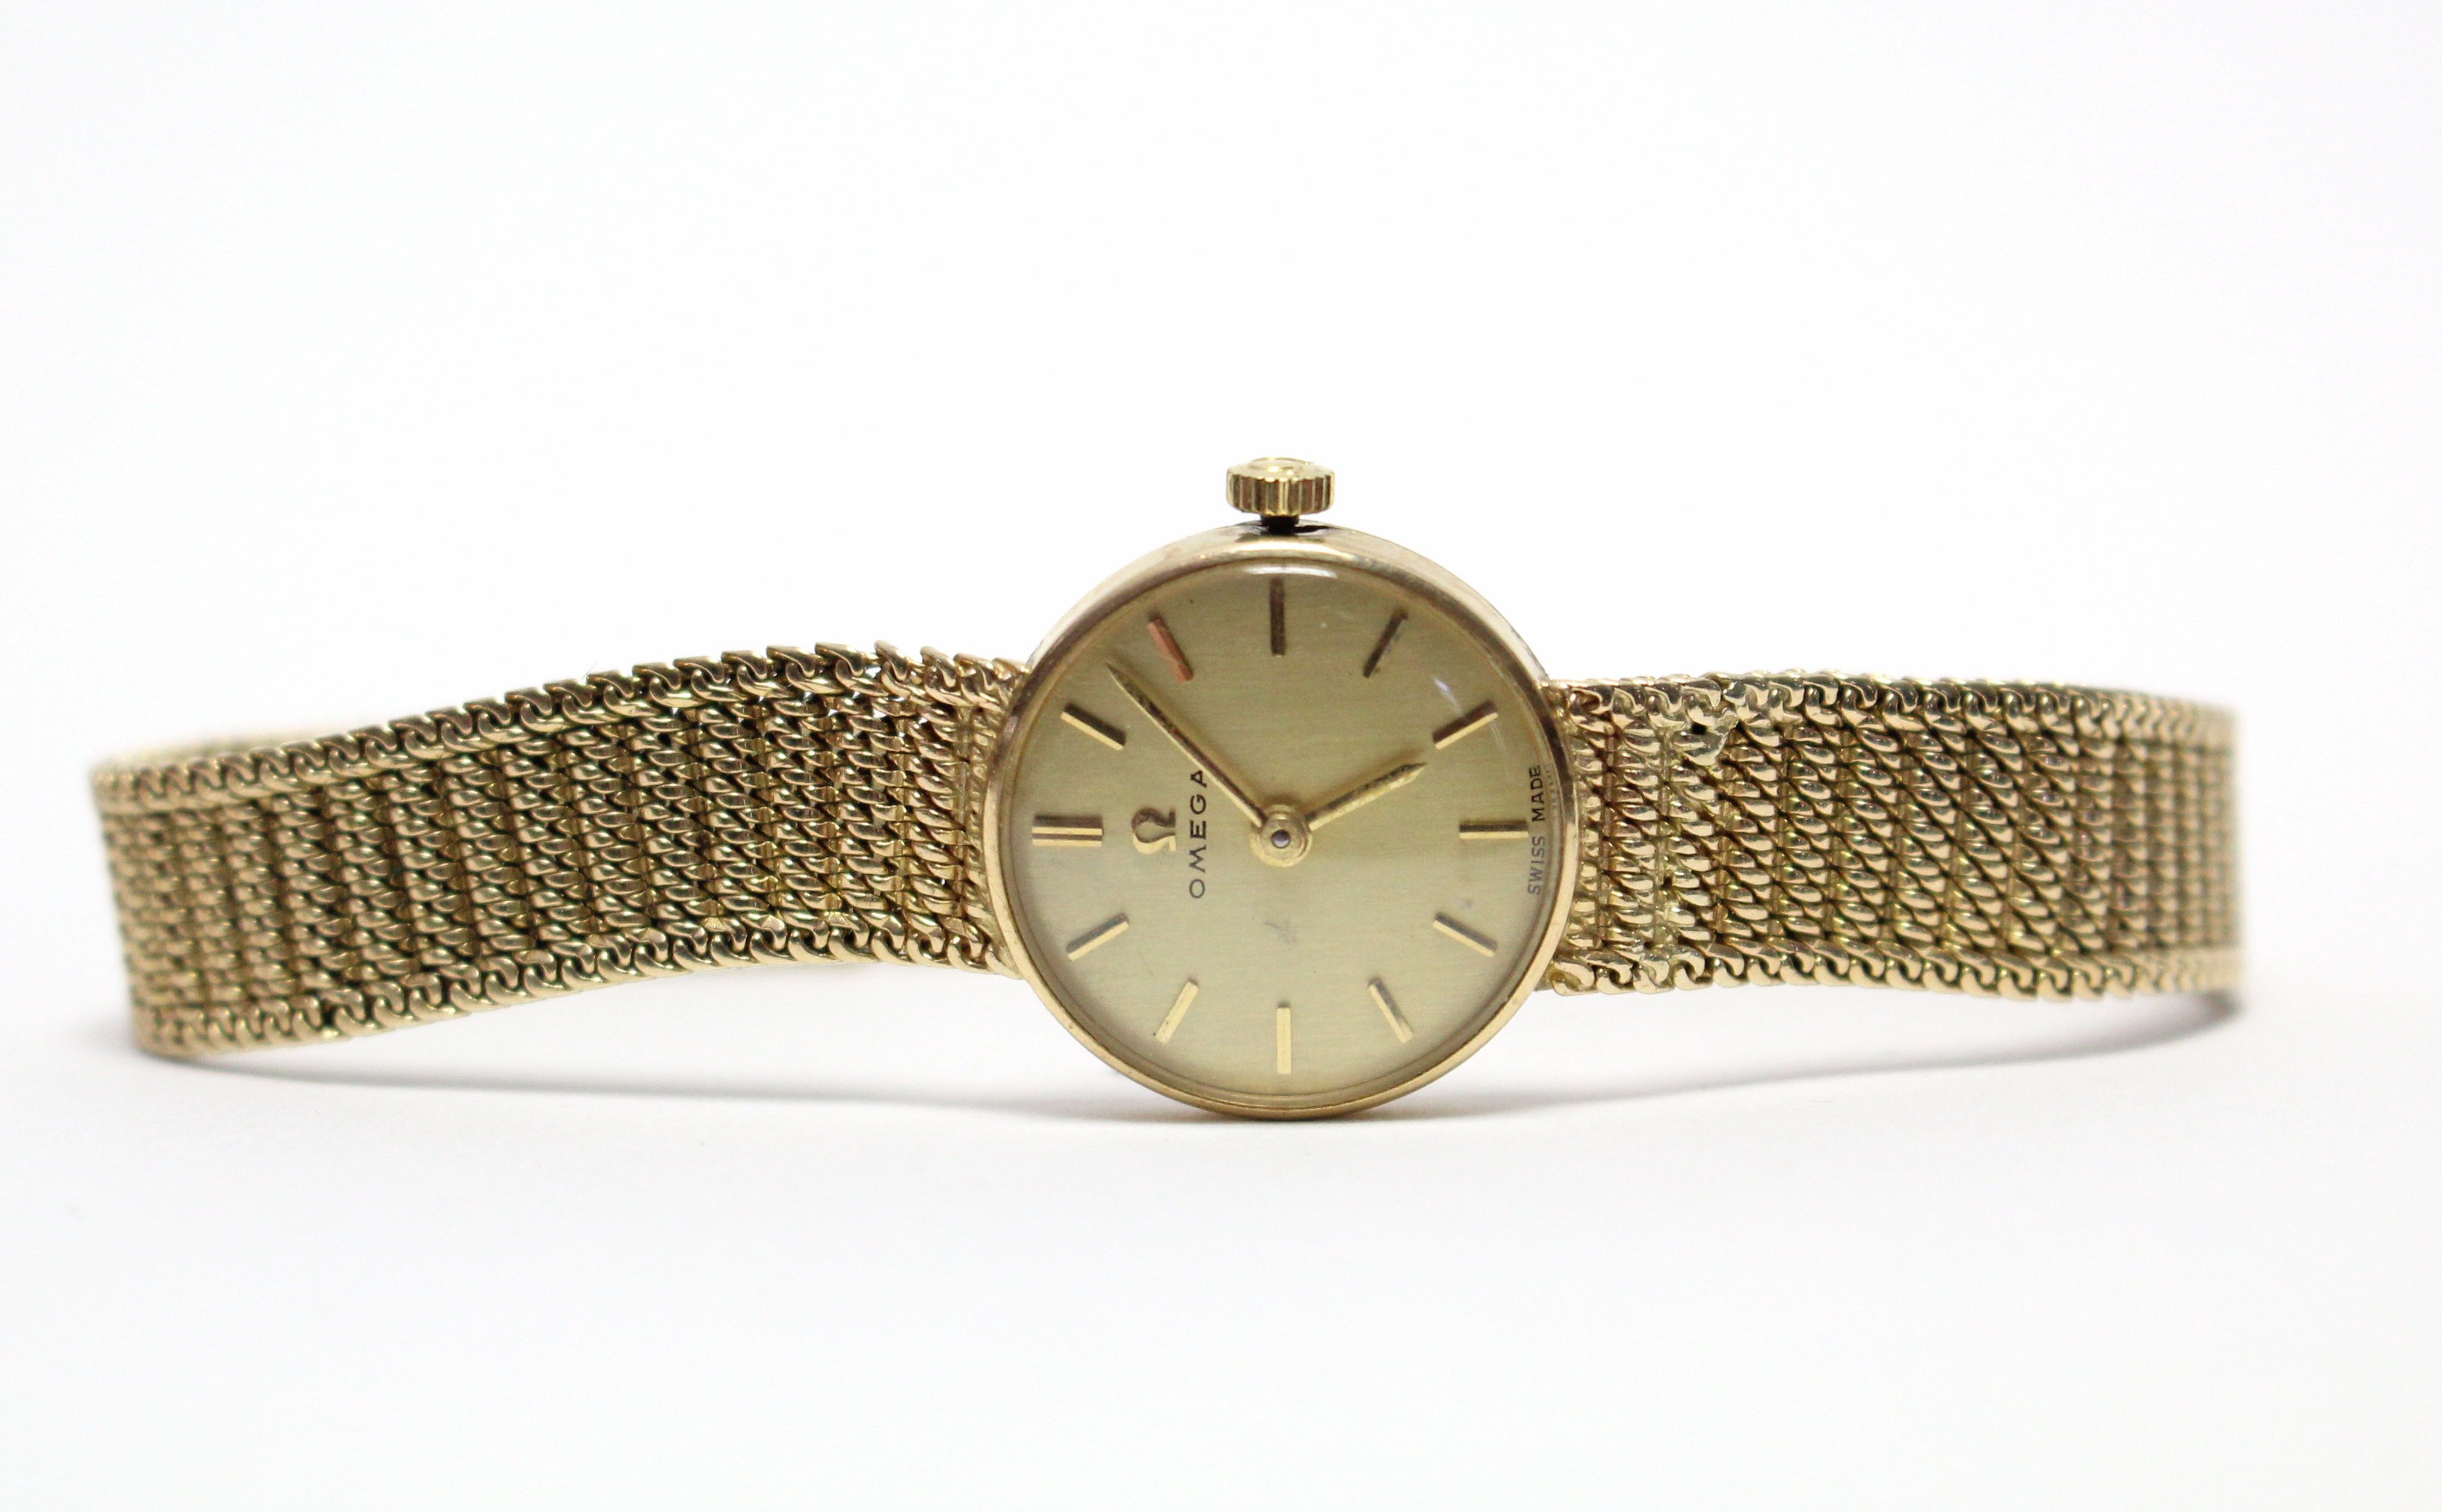 Lot 29 - A 1960's Omega ladies' wristwatch, the circular champagne dial with gold baton numerals & hands,